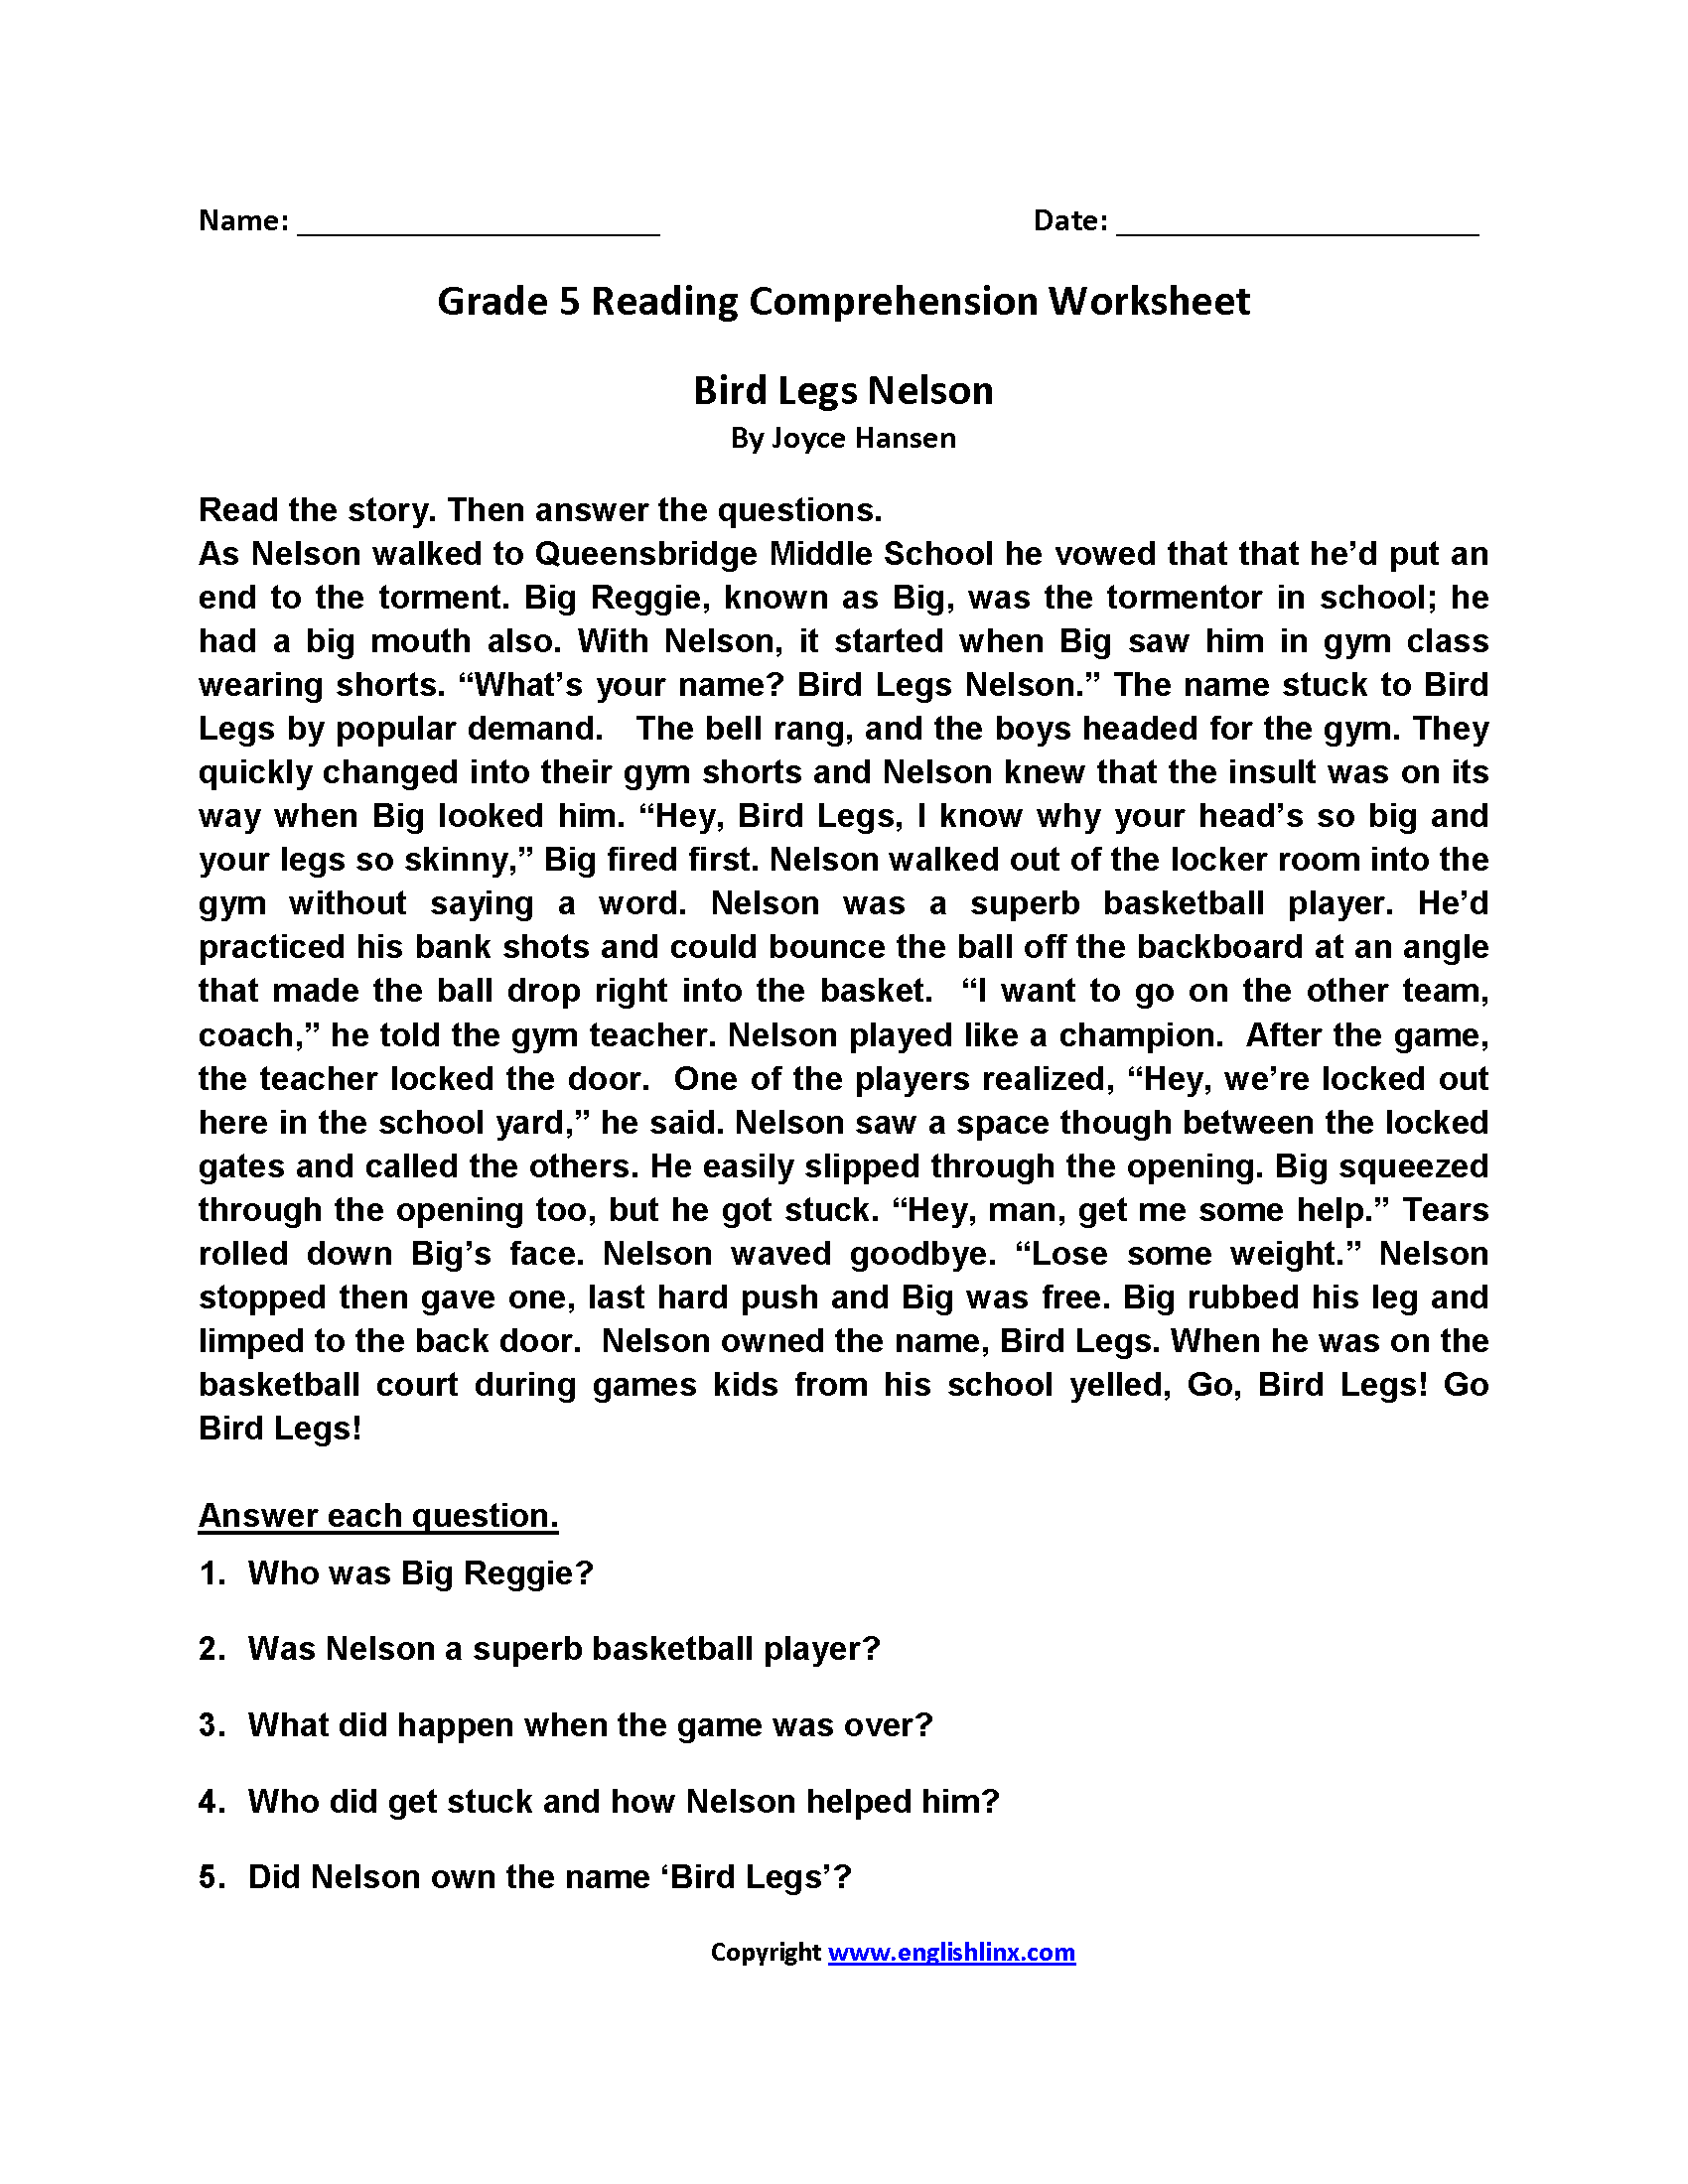 Worksheets Fifth Grade English Worksheets worksheet 5th grade english grammar wosenly free math 1 worksheets coffemix full version printable english